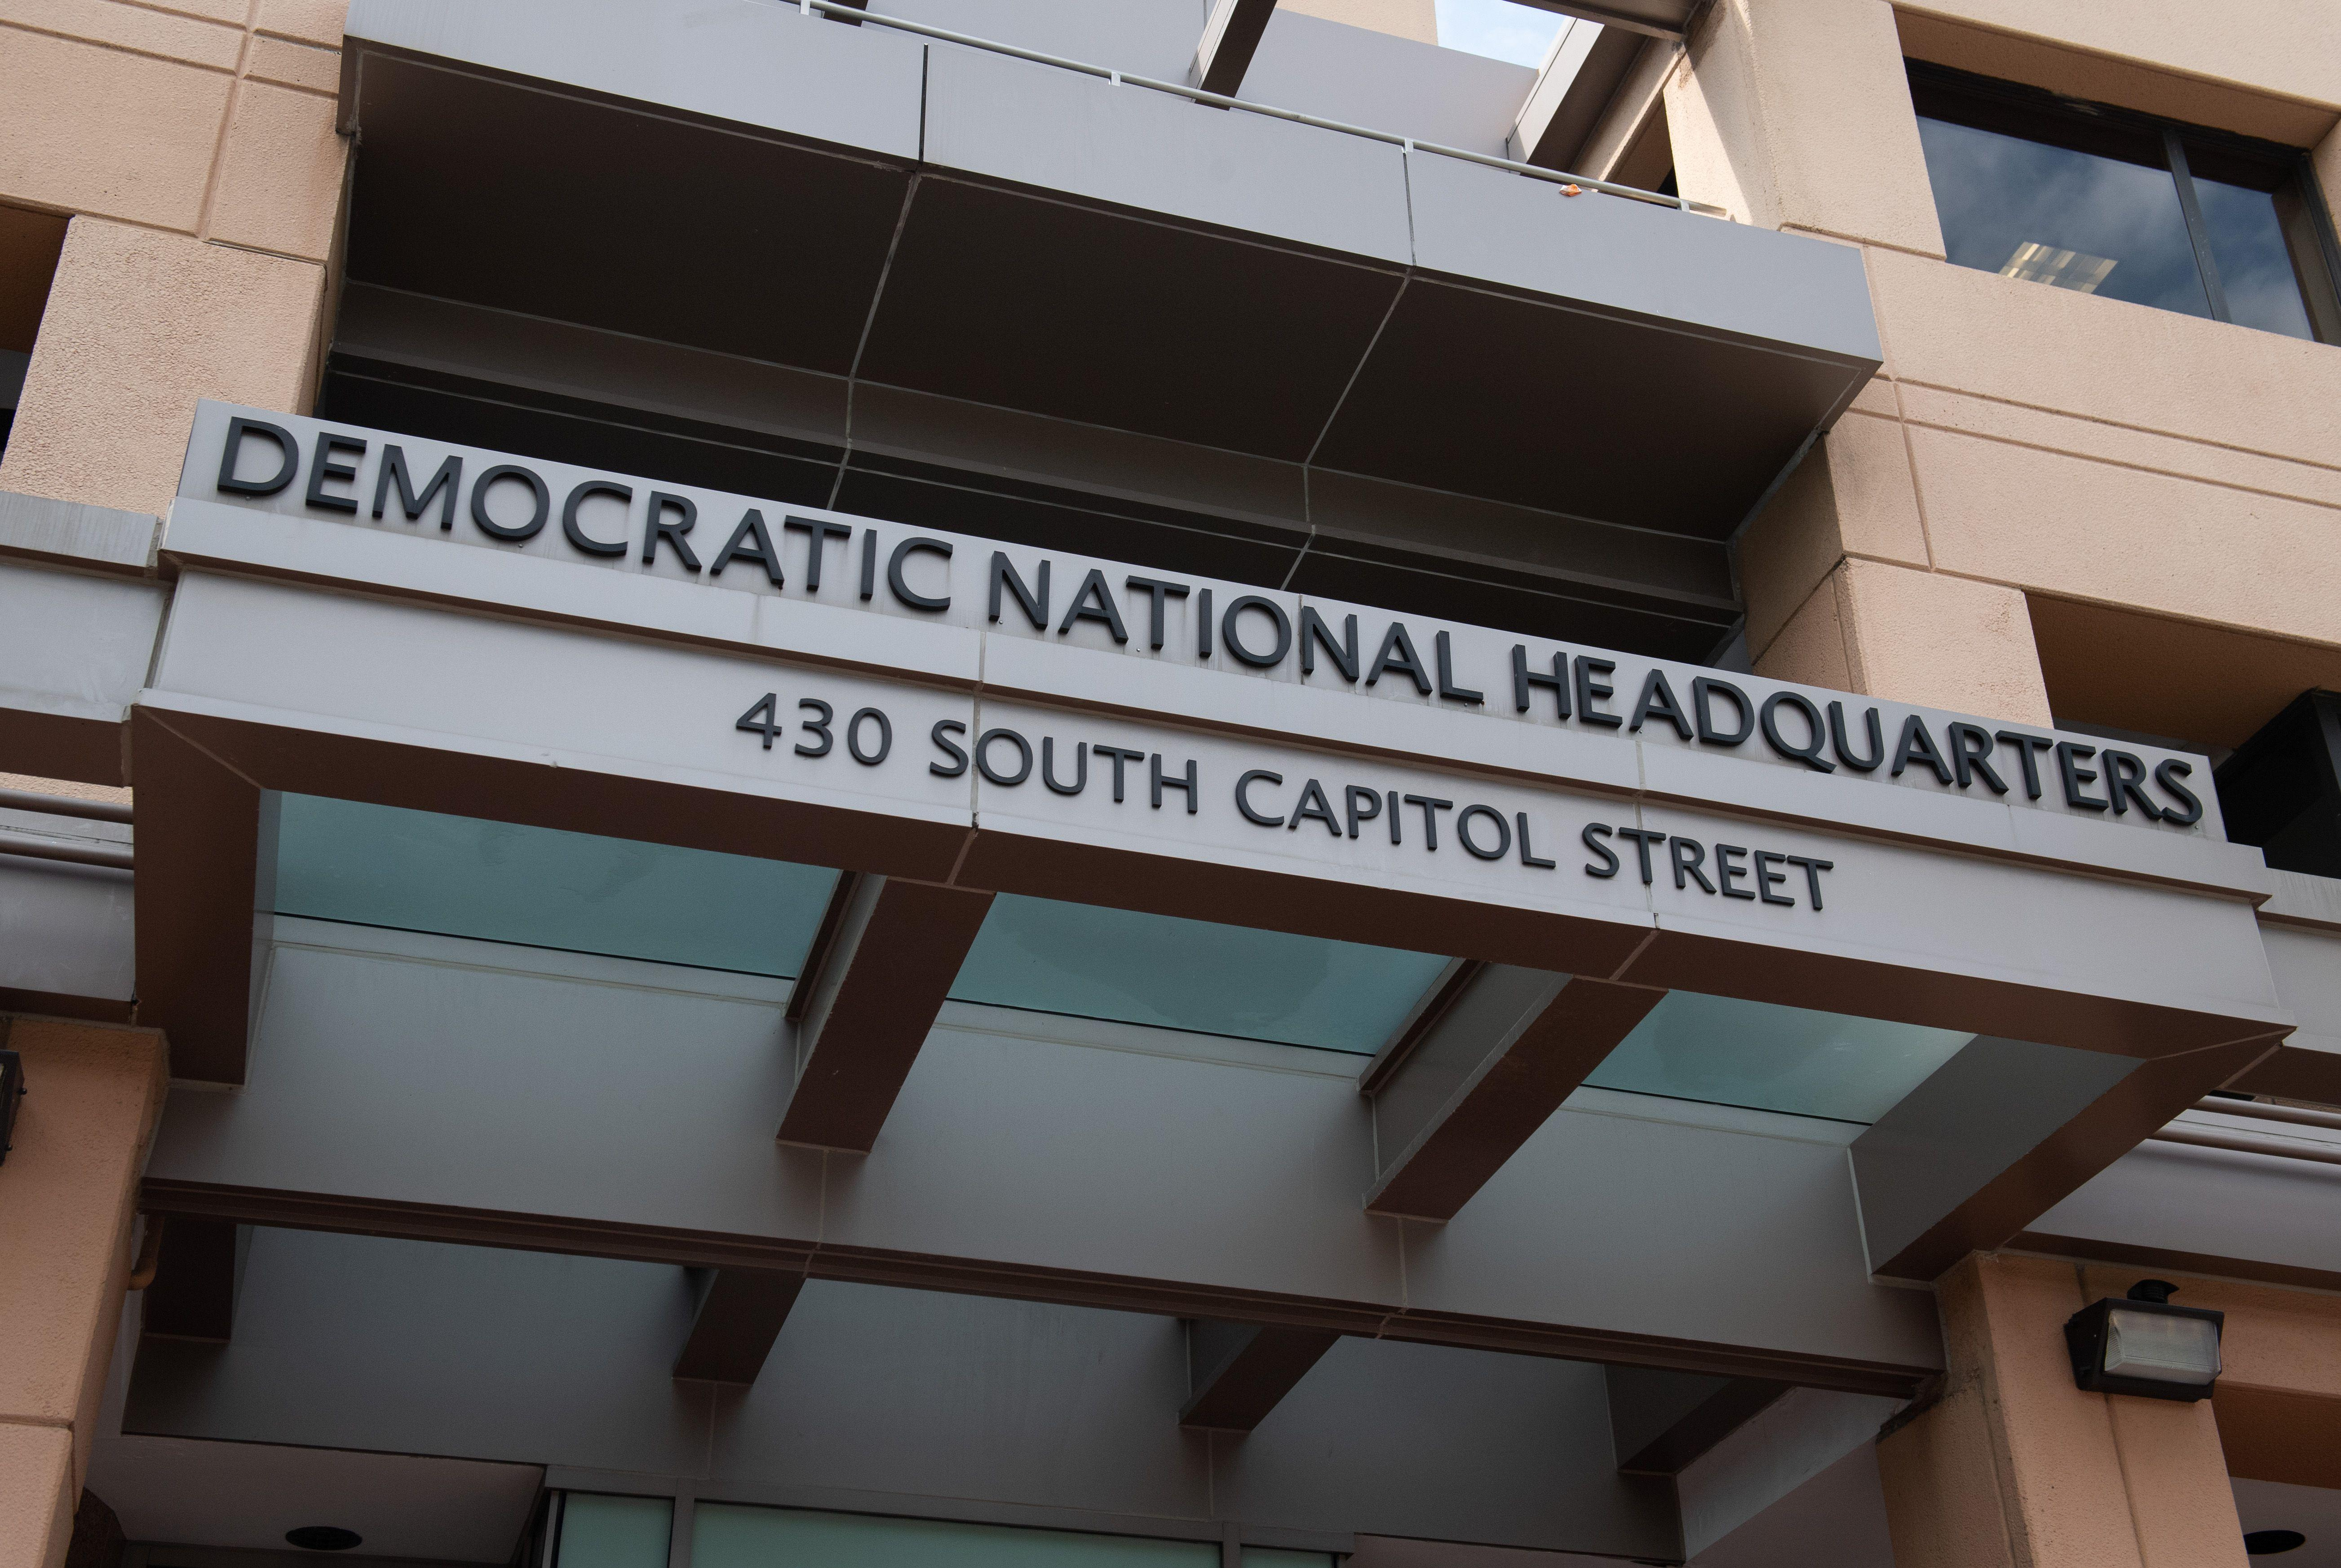 Entry signage at Democratic National Headquarters